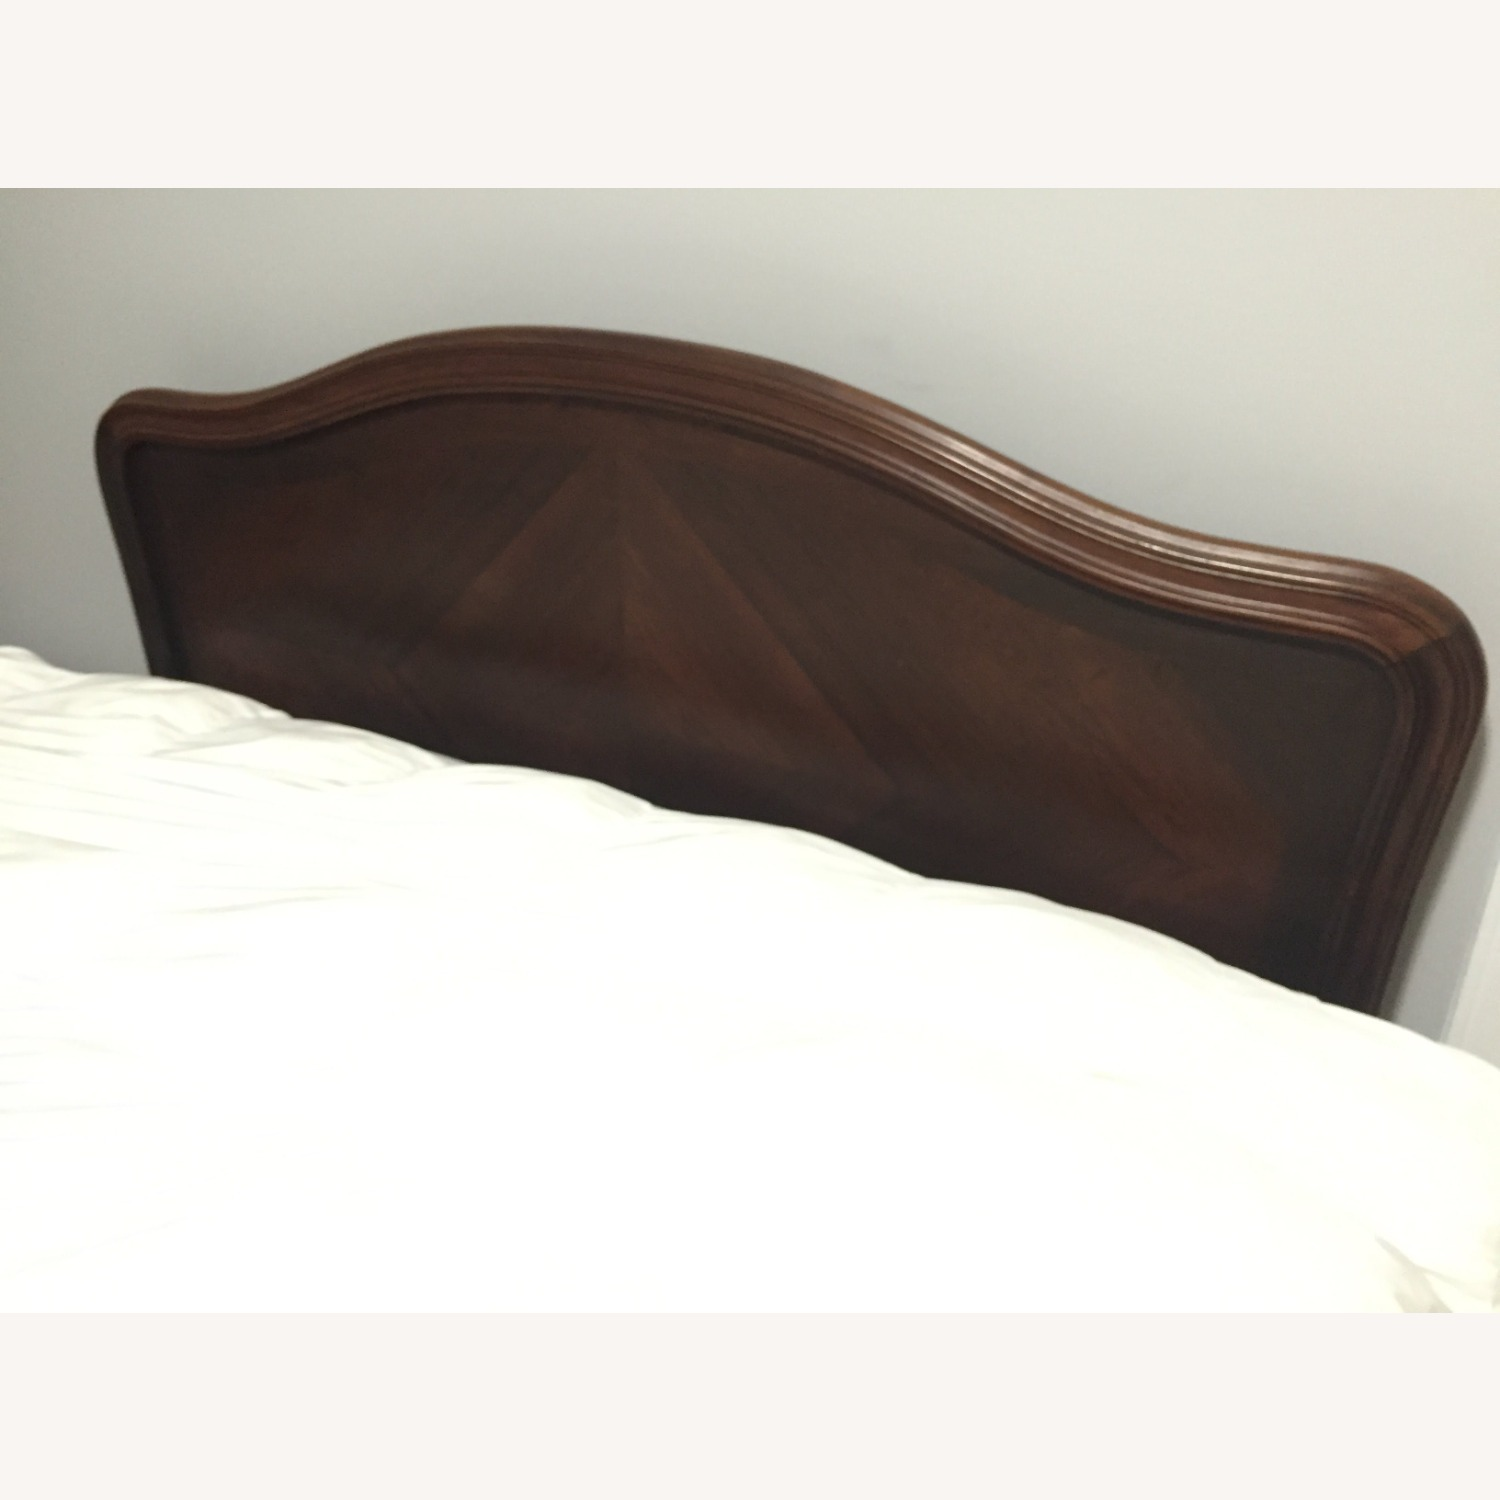 1880's Antique French Rosewood Bed - image-4